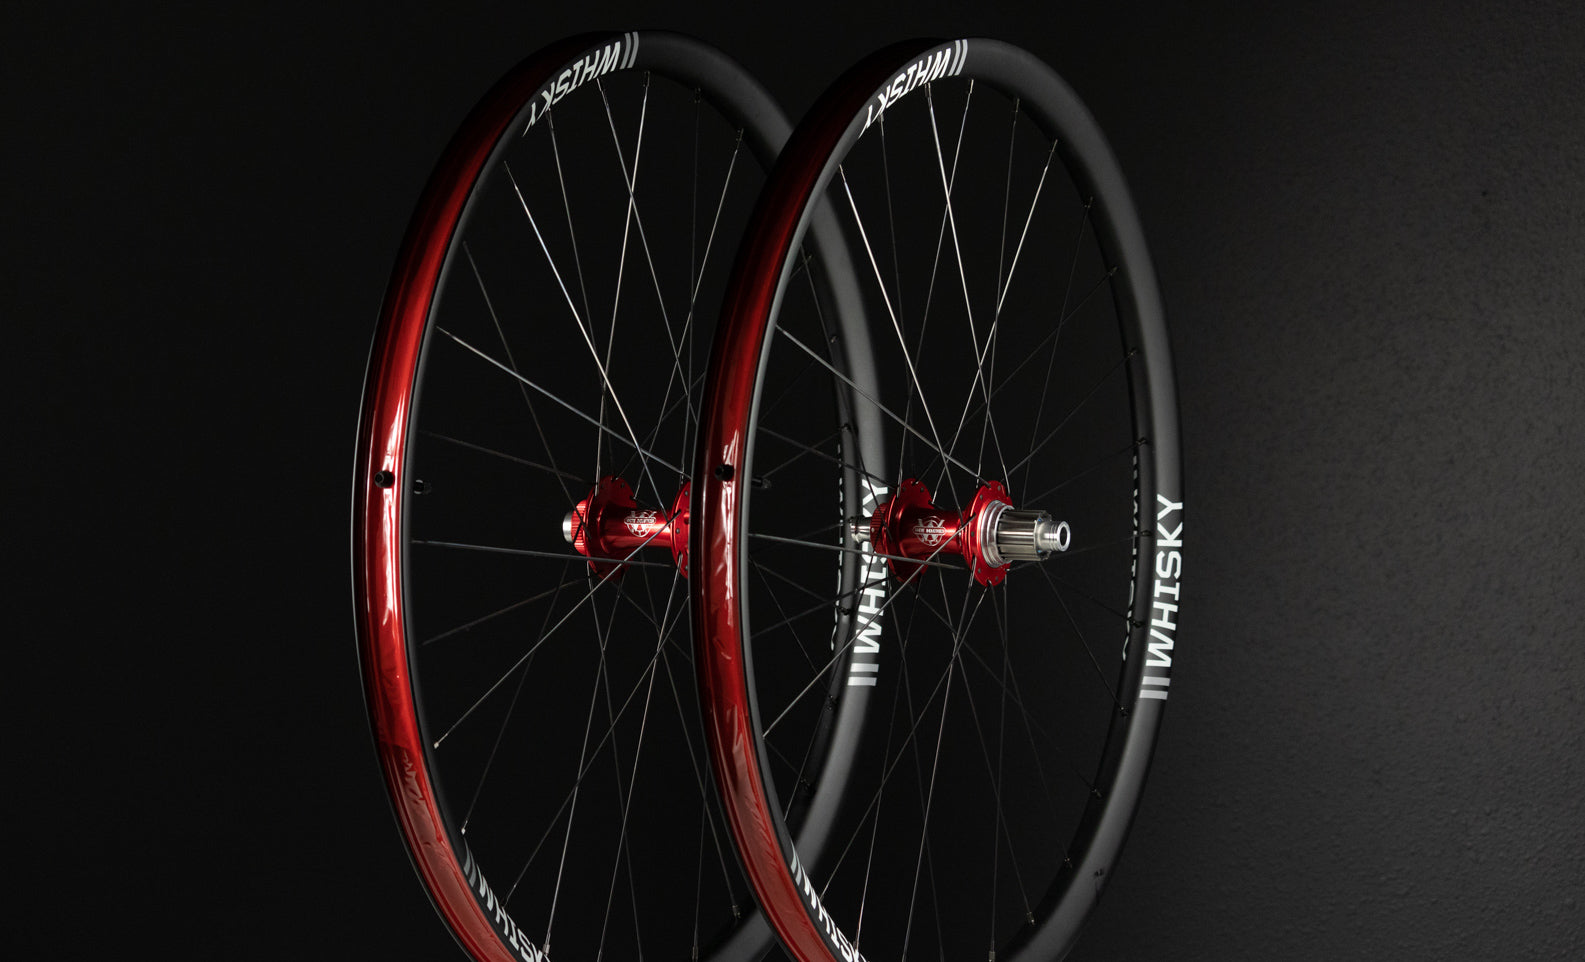 Wheel Build Of The Week: Whisky No9 36W / White Industries CLD Red